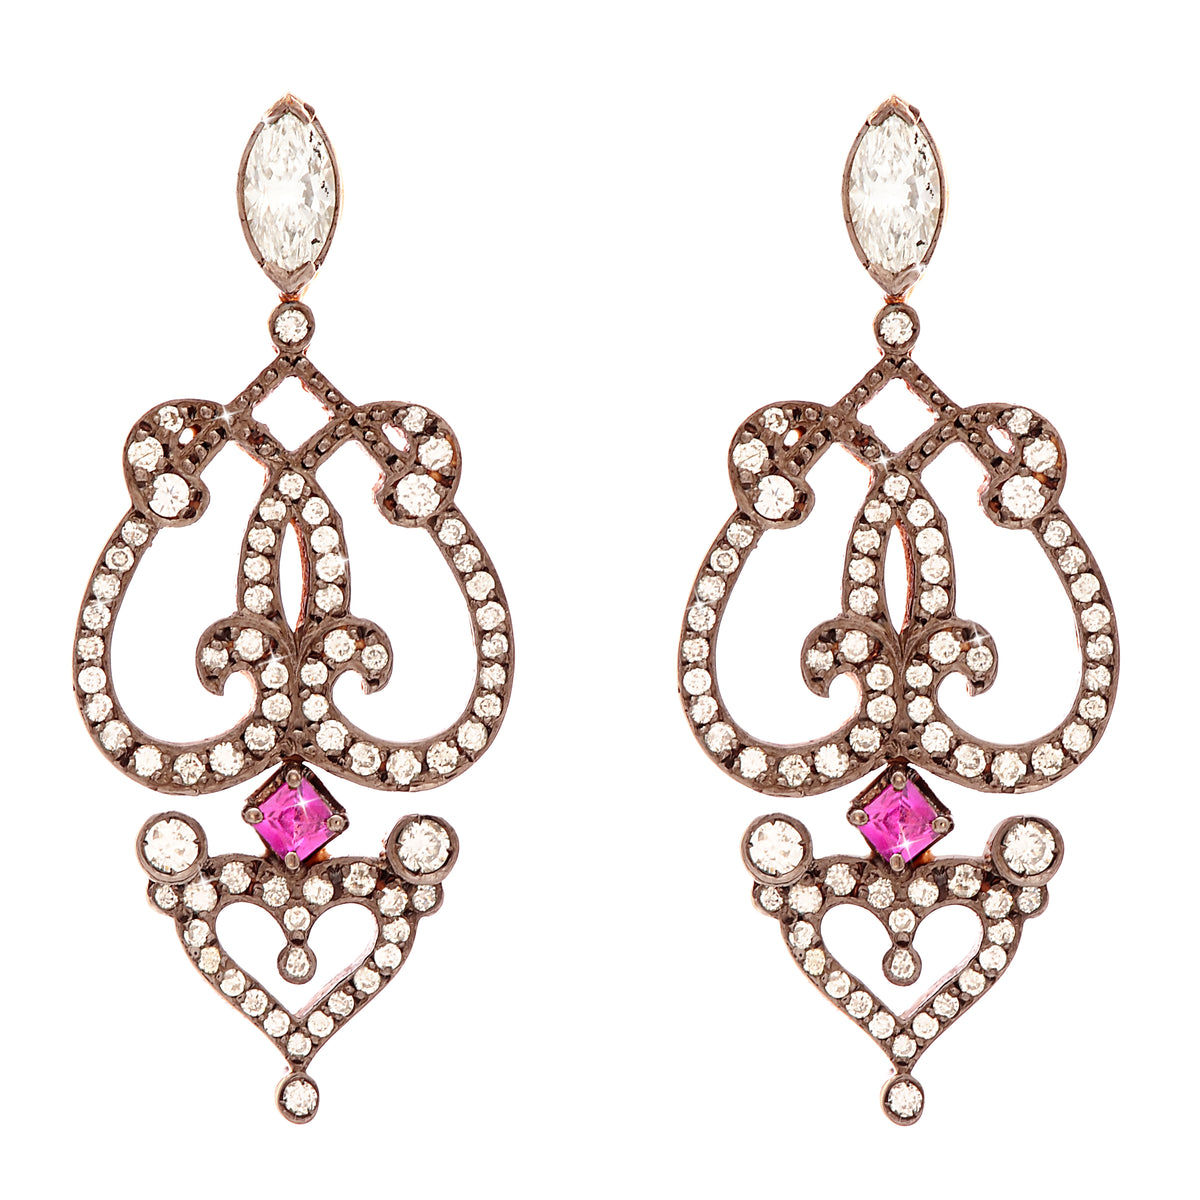 'Marquise' earrings in 18k rose gold set with pave diamonds with rubies